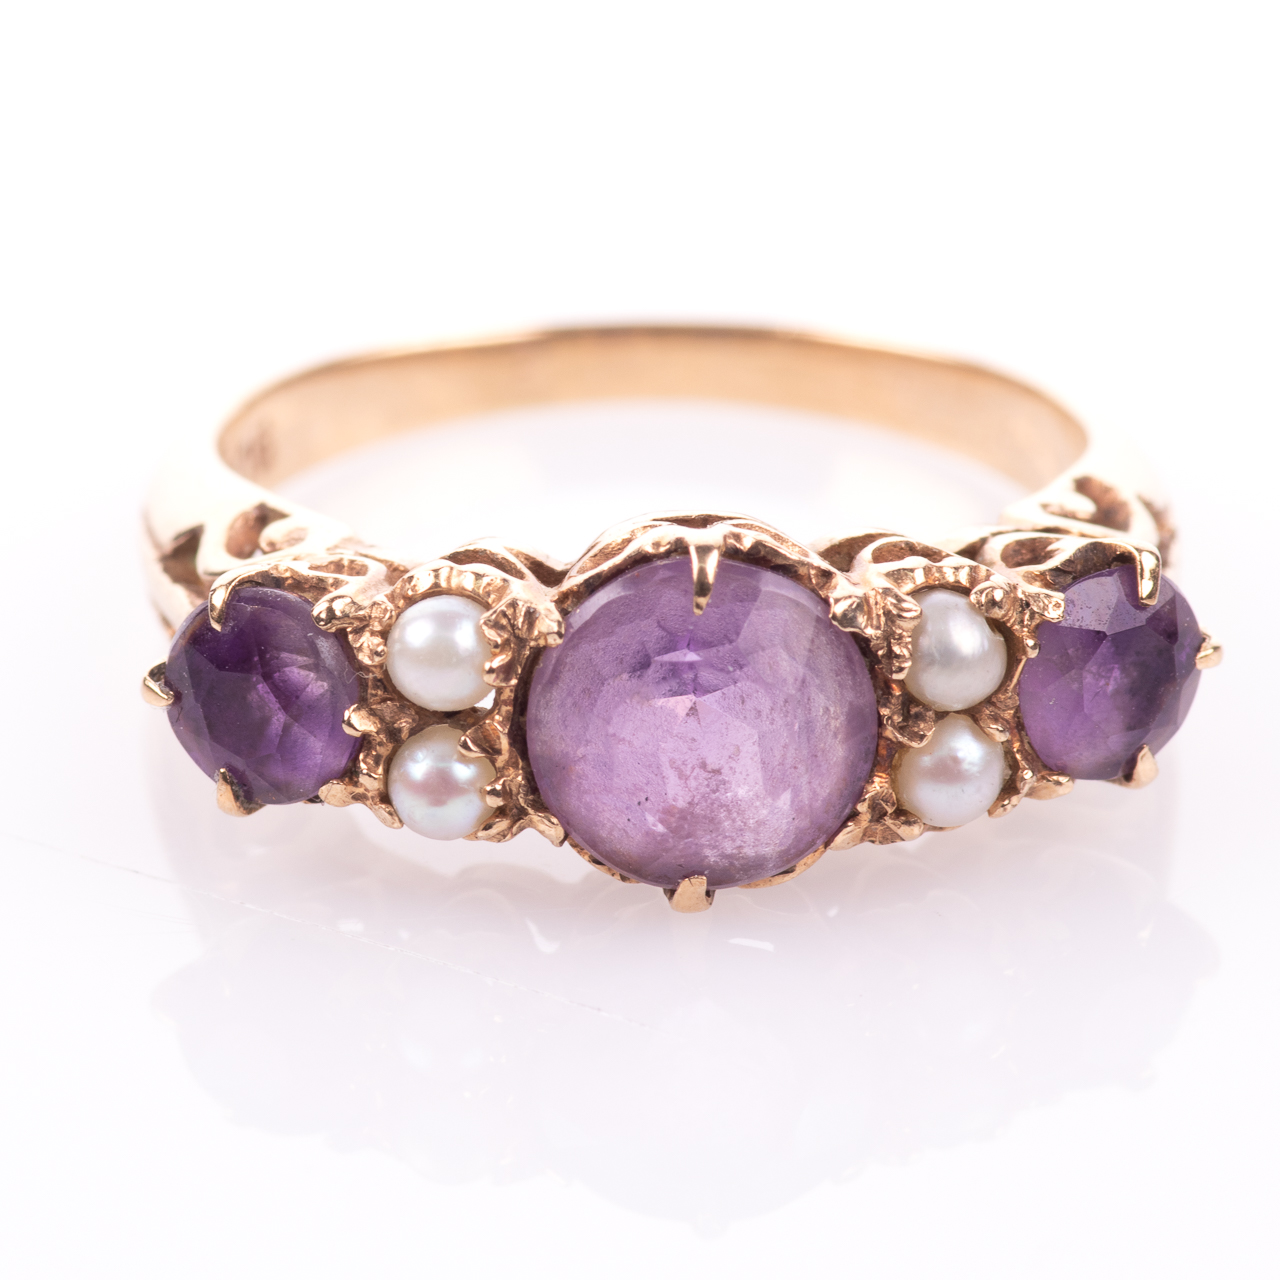 9ct Gold 2.10ct Amethyst & Pearl Ring - Image 3 of 7